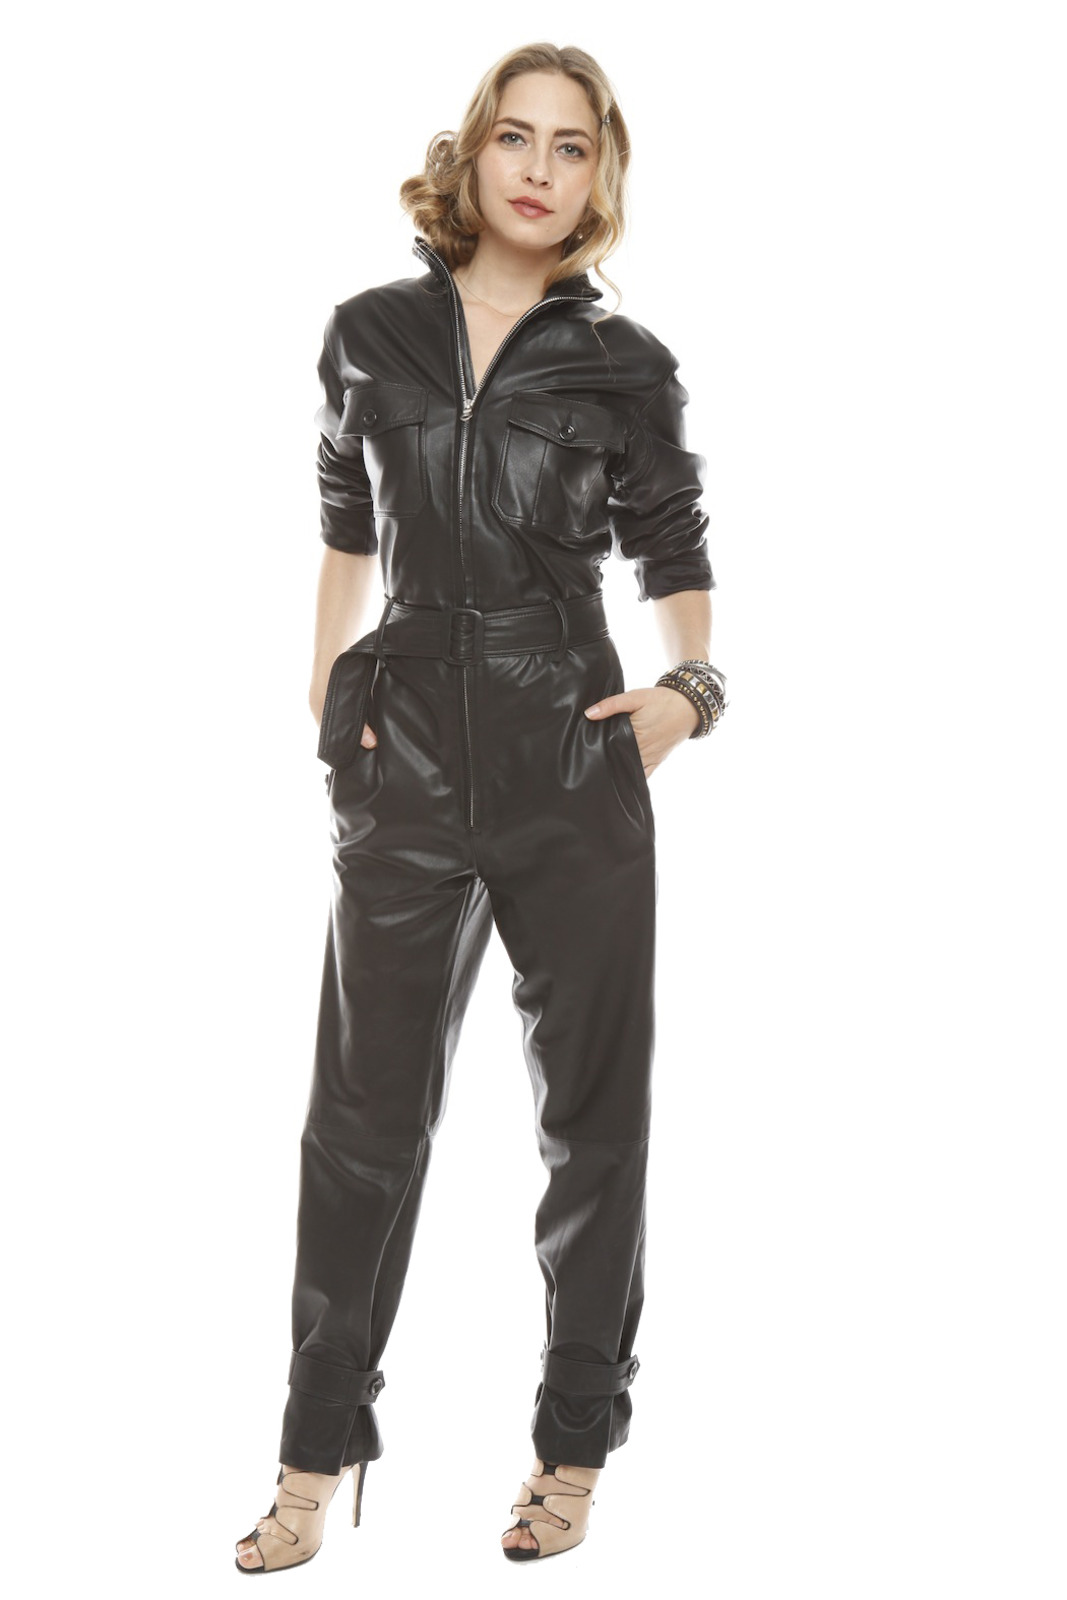 ac86f678917 Patricia Del Castillo Leather Jumpsuit from Long Island — Shoptiques